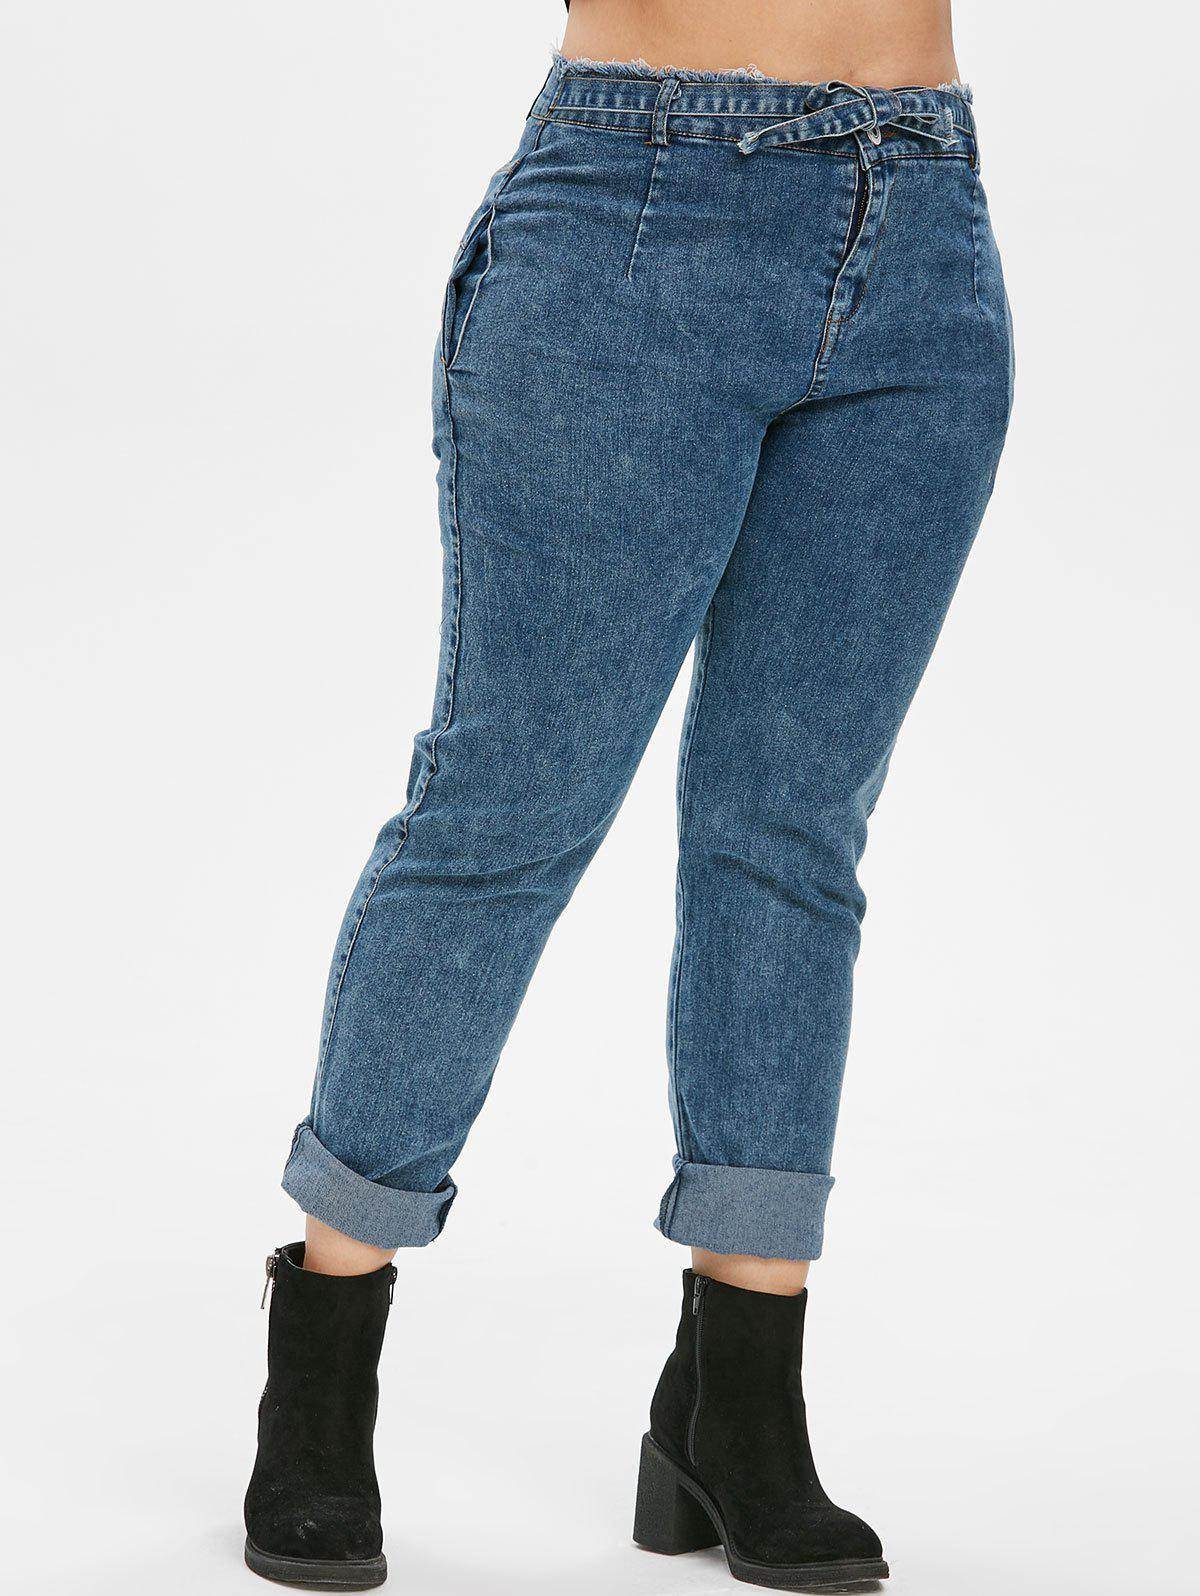 Best High Waisted Knotted Frayed Skinny Plus Size Jeans